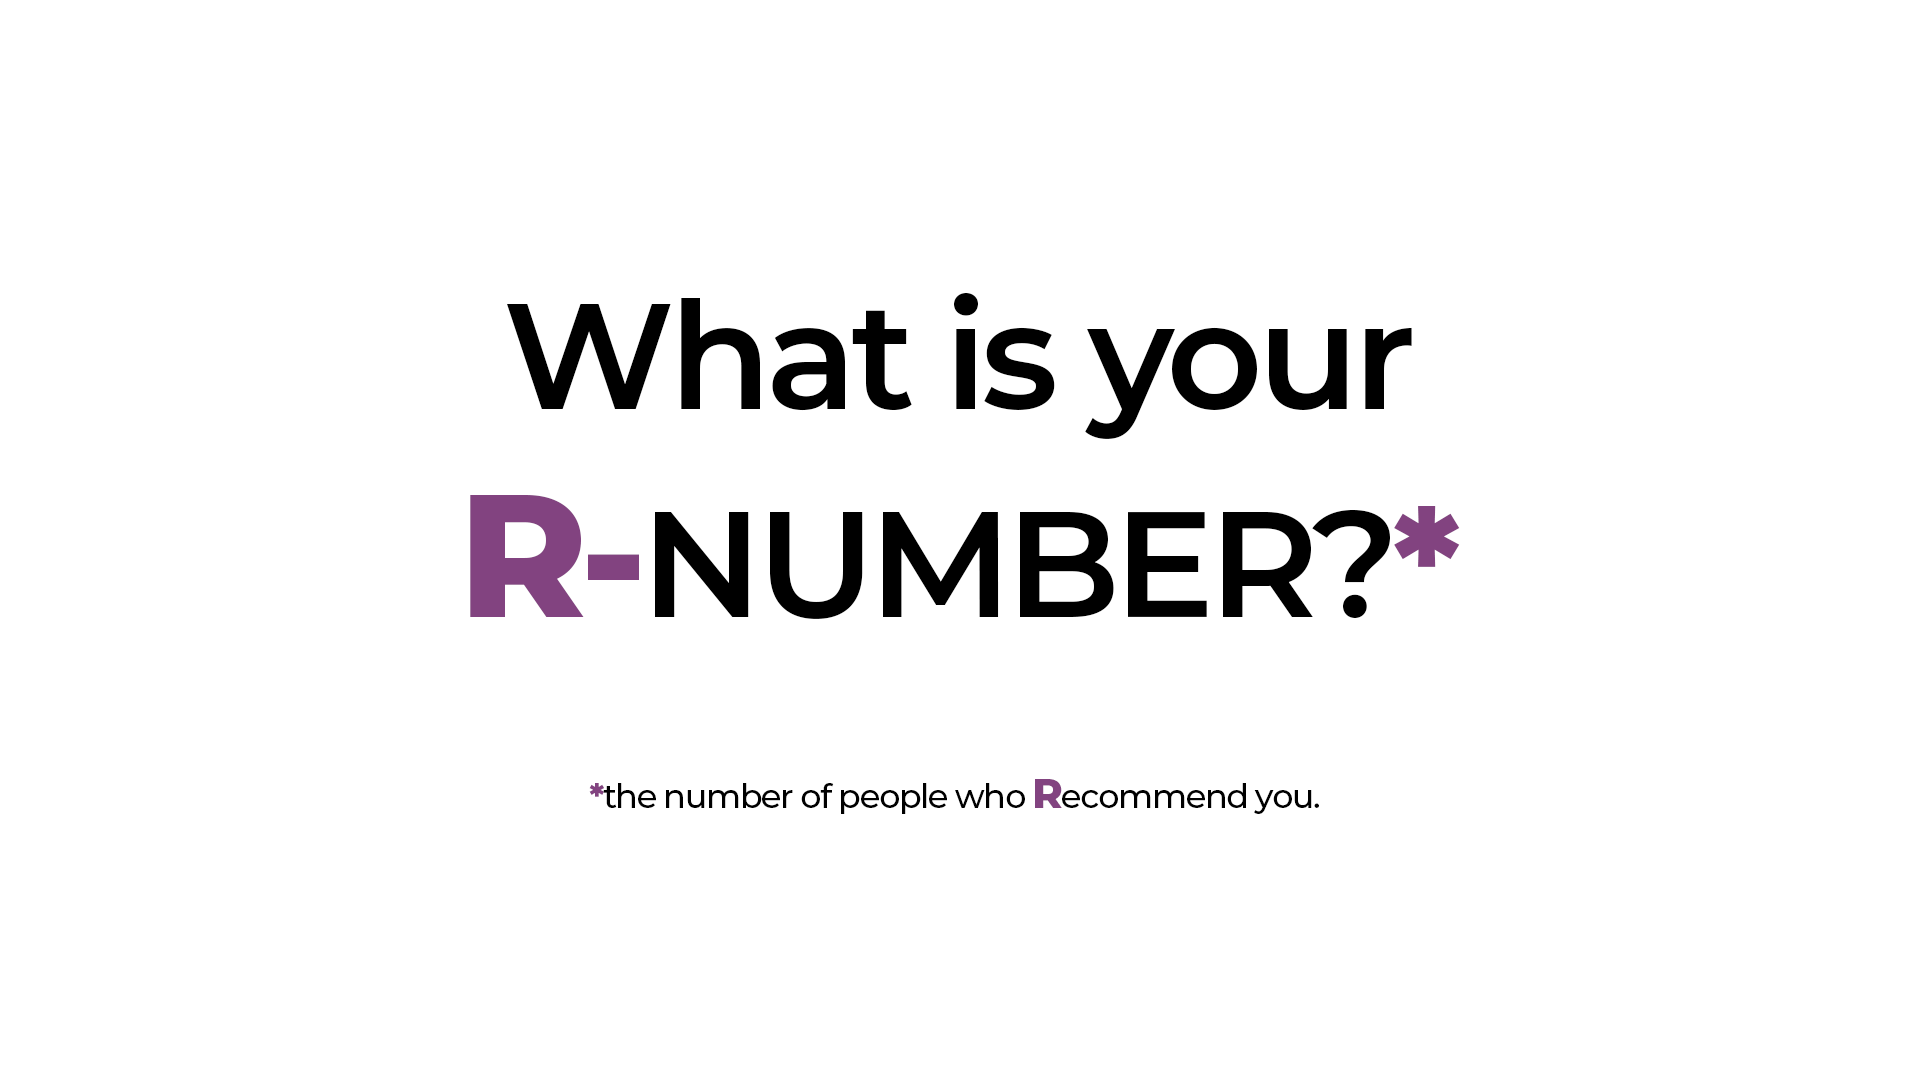 what is your r number?